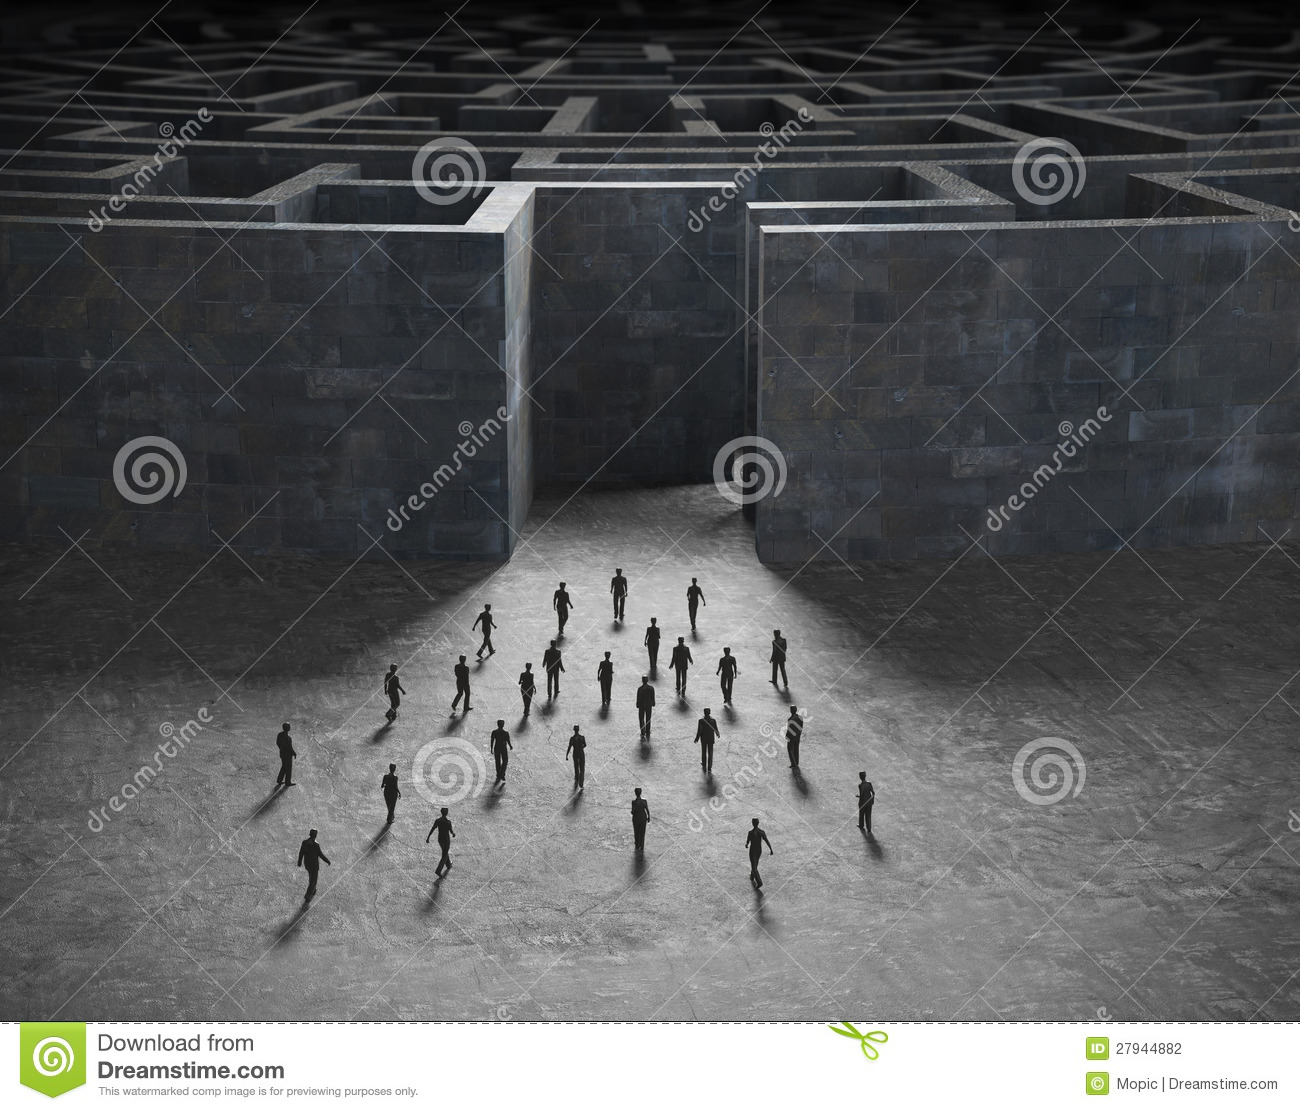 Tiny people entering a maze